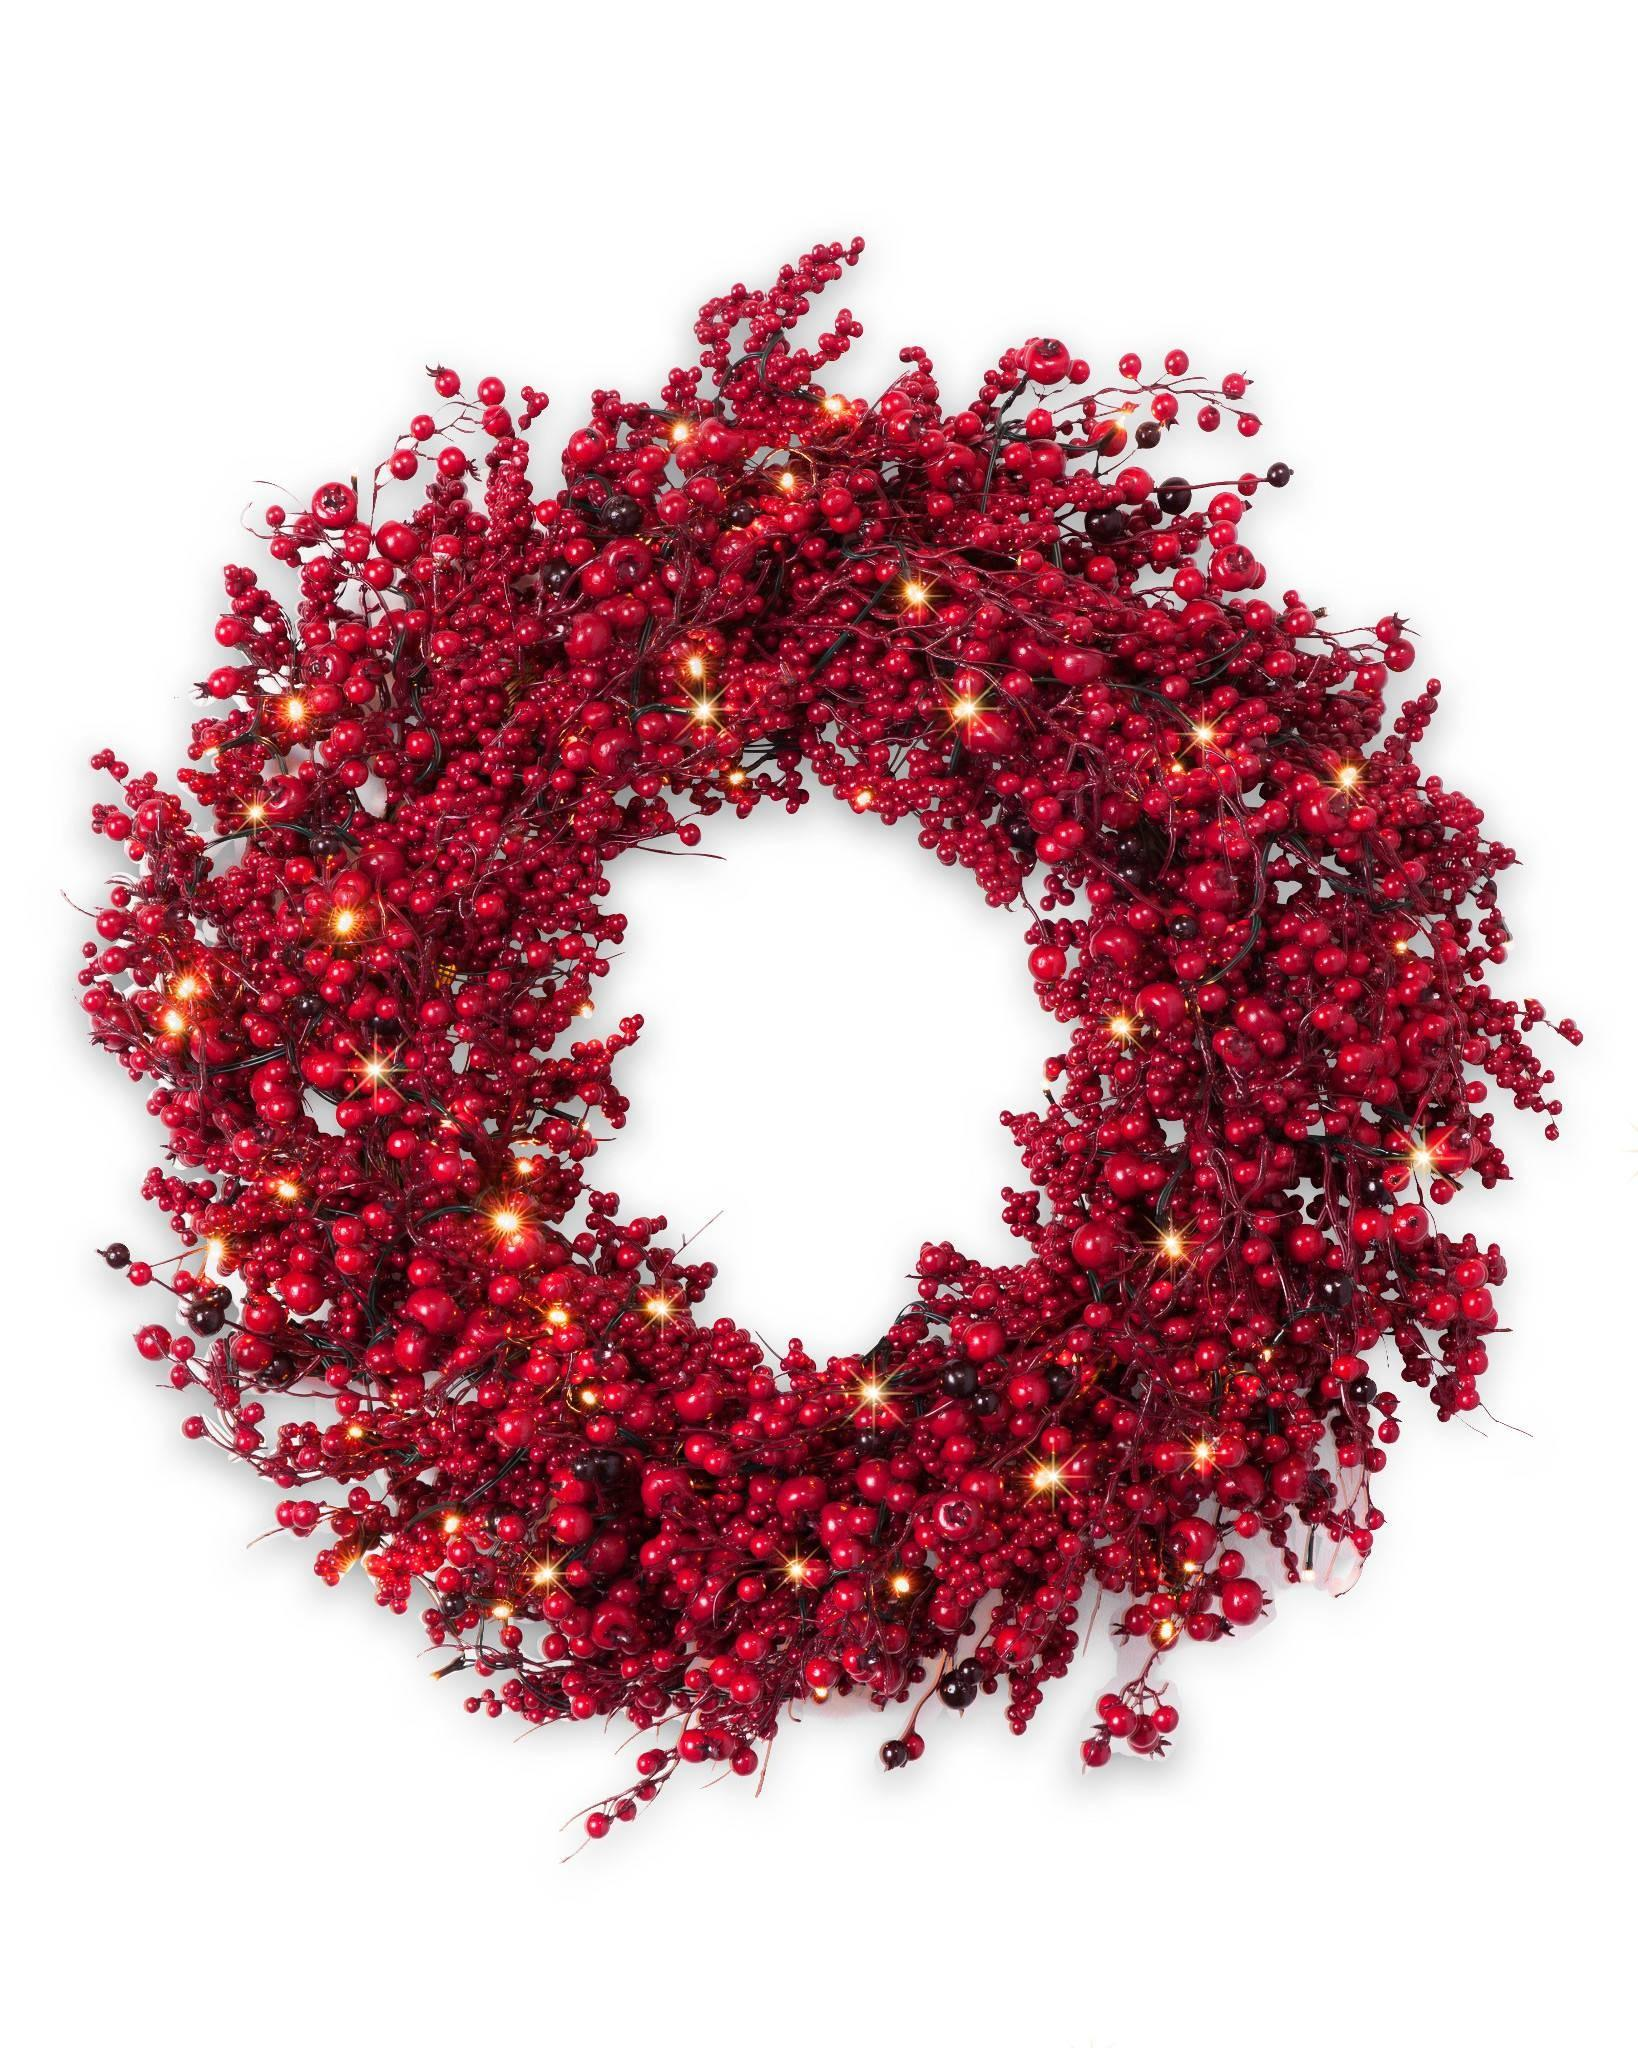 Festive Red Berry Wreath Balsam Hill